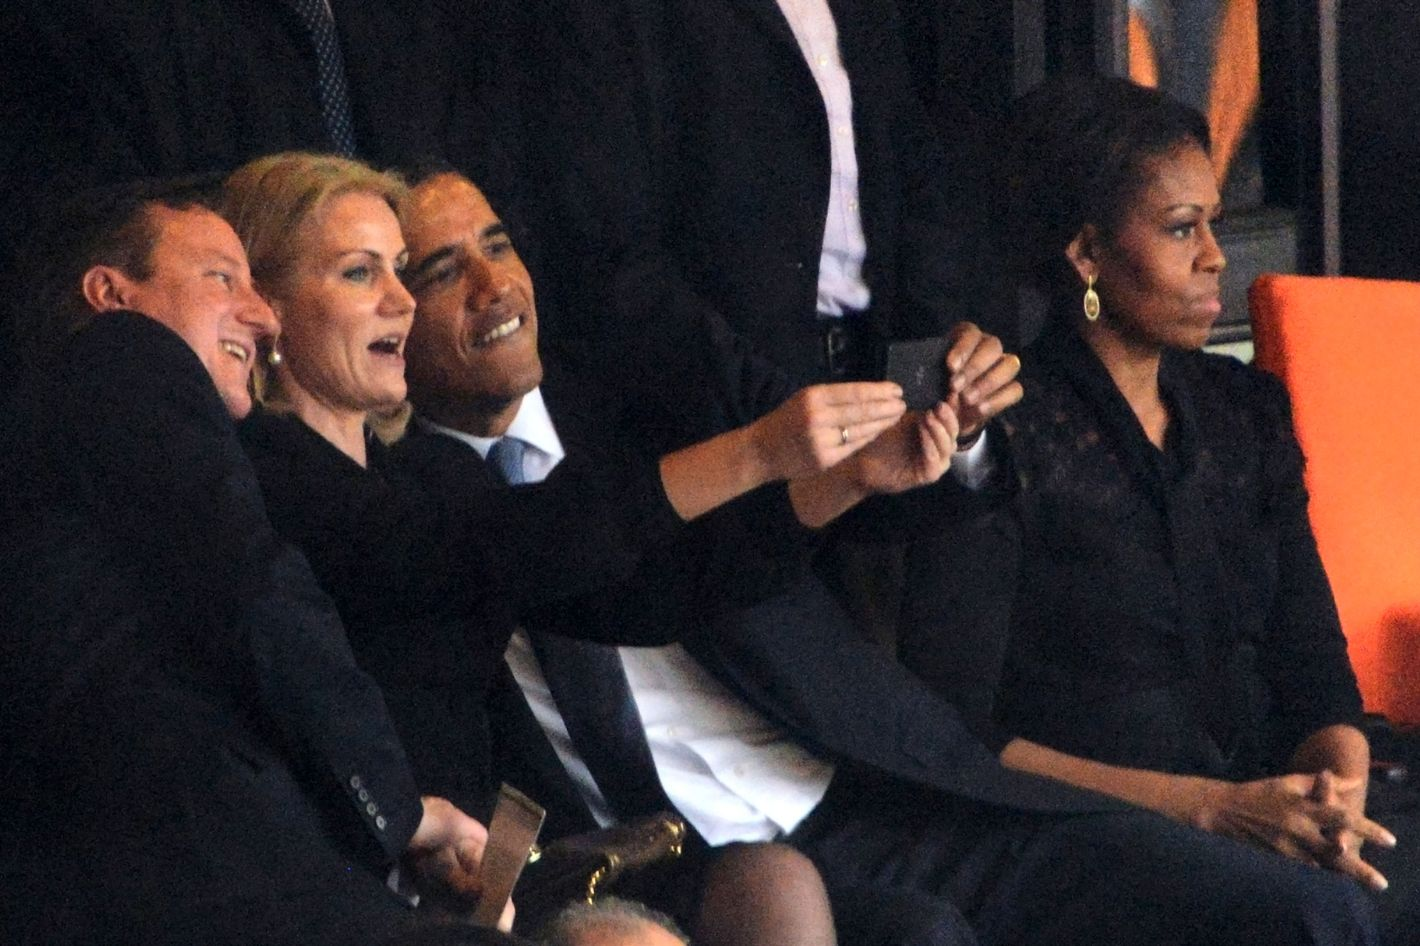 US President  Barack Obama (R) and British Prime Minister David Cameron pose for a picture with Denmark's Prime Minister Helle Thorning Schmidt (C) next to US First Lady Michelle Obama (R) during the memorial service of South African former president Nelson Mandela at the FNB Stadium (Soccer City) in Johannesburg on December 10, 2013. Mandela, the revered icon of the anti-apartheid struggle in South Africa and one of the towering political figures of the 20th century, died in Johannesburg on December 5 at age 95.